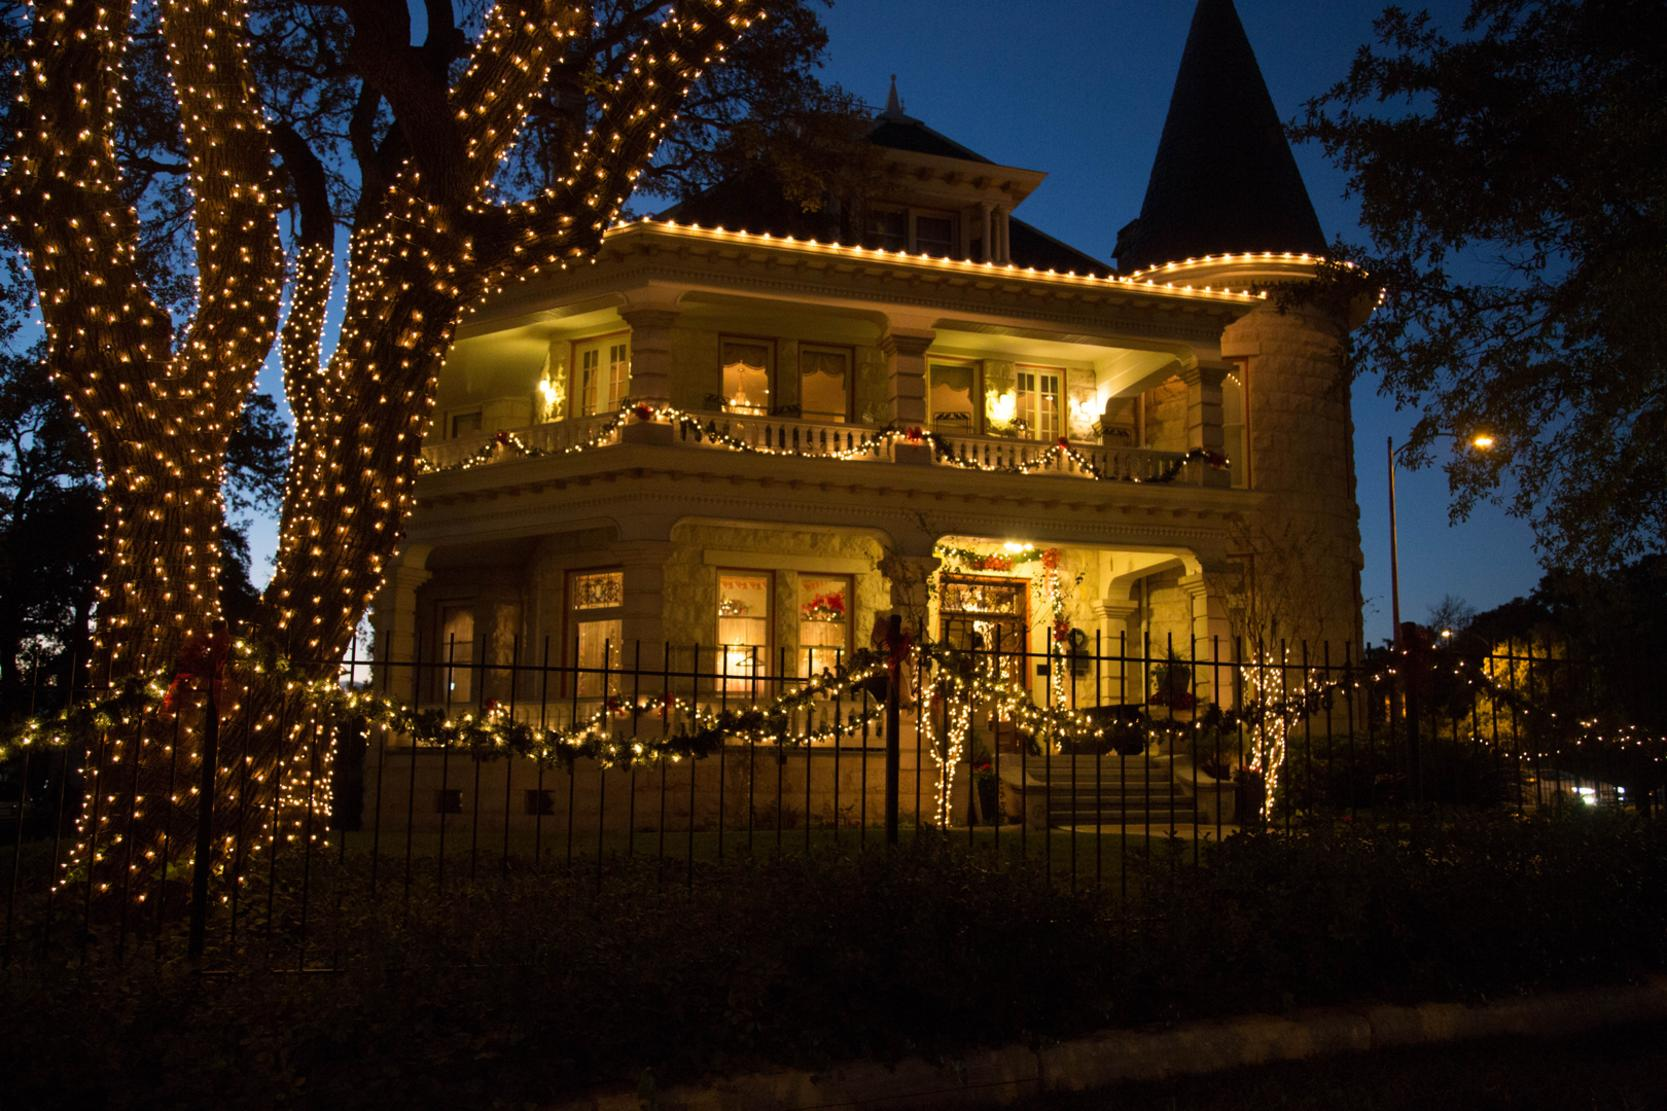 The Daniel H. Caswell House is home of the Austin Junior Forum and their annual Christmas at the Caswell House event. The house is beautifully decorated for the holidays.